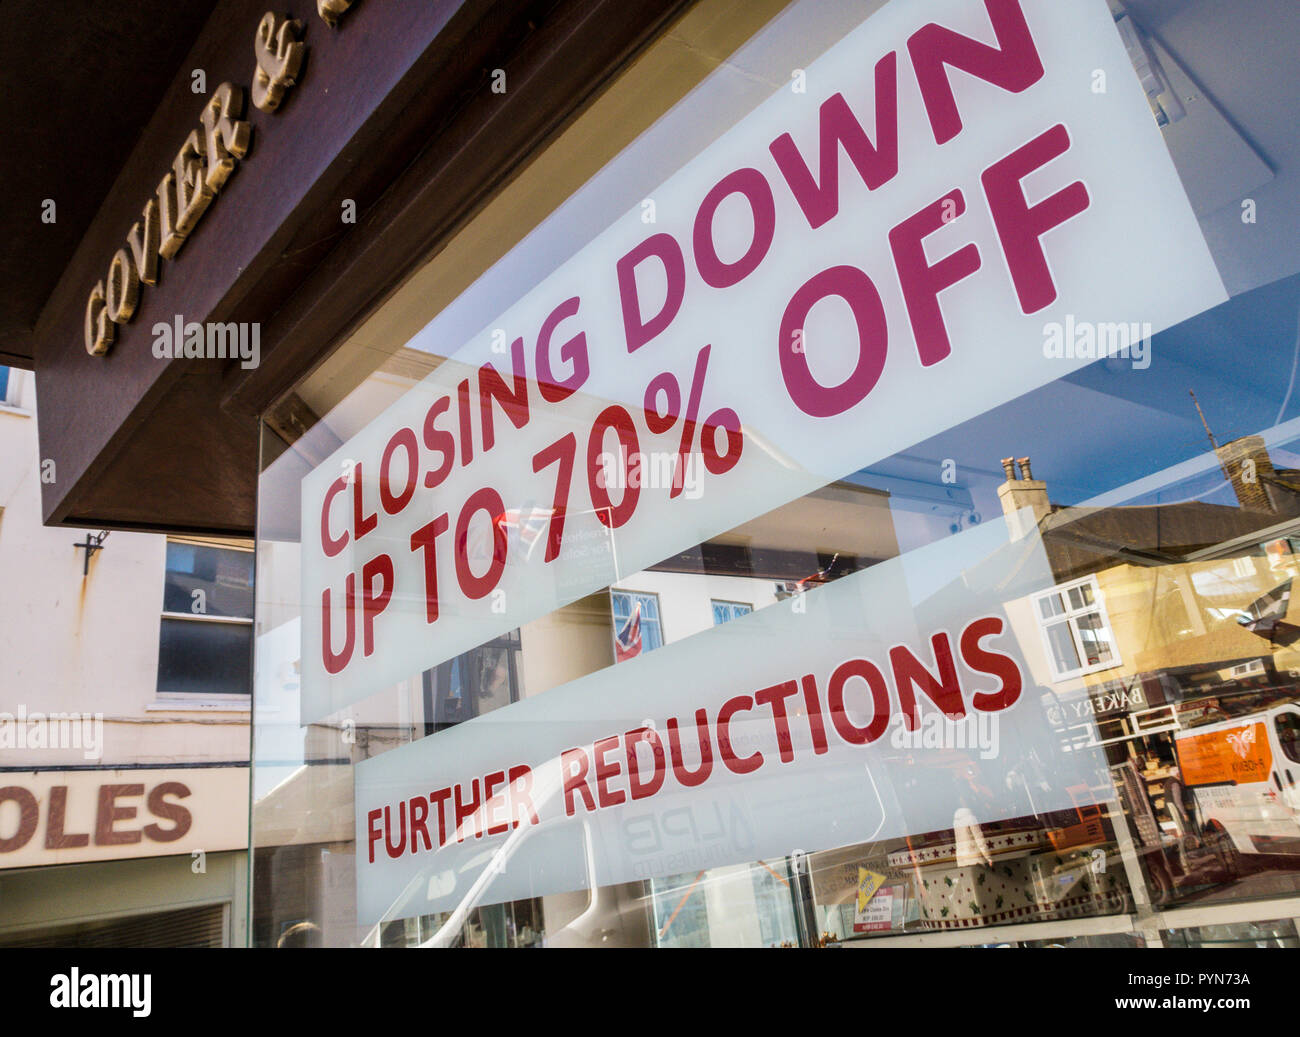 Retail closures across the UK, with closing down sales as at the famous independent Goviers store in Sidmouth. - Stock Image